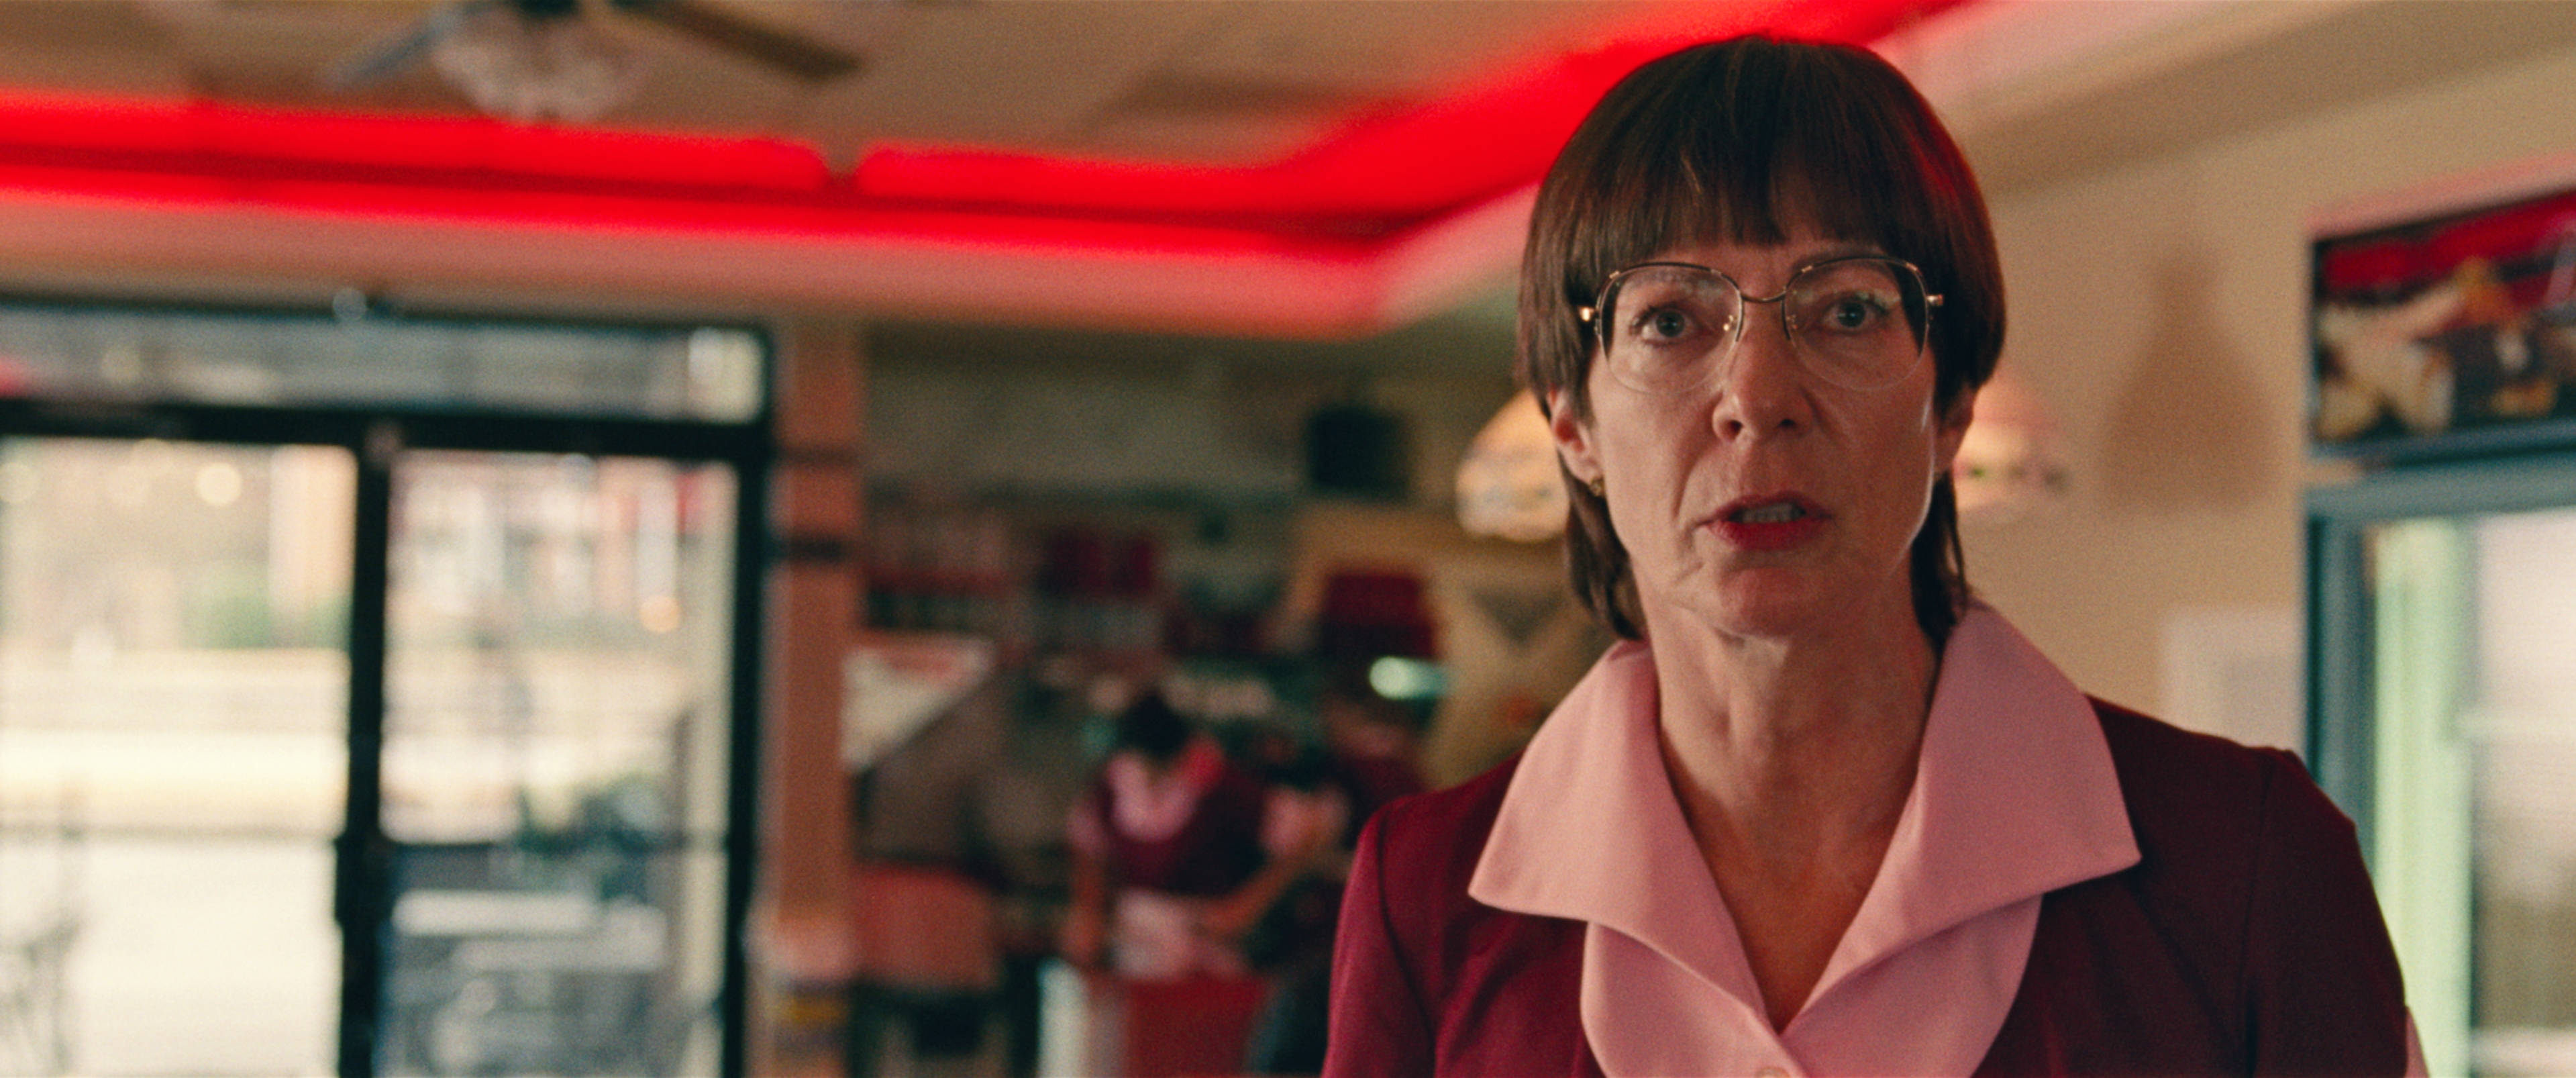 8- LaVona Golden (Allison Janney) at work in I, TONYA, courtesy of NEON and 30WEST